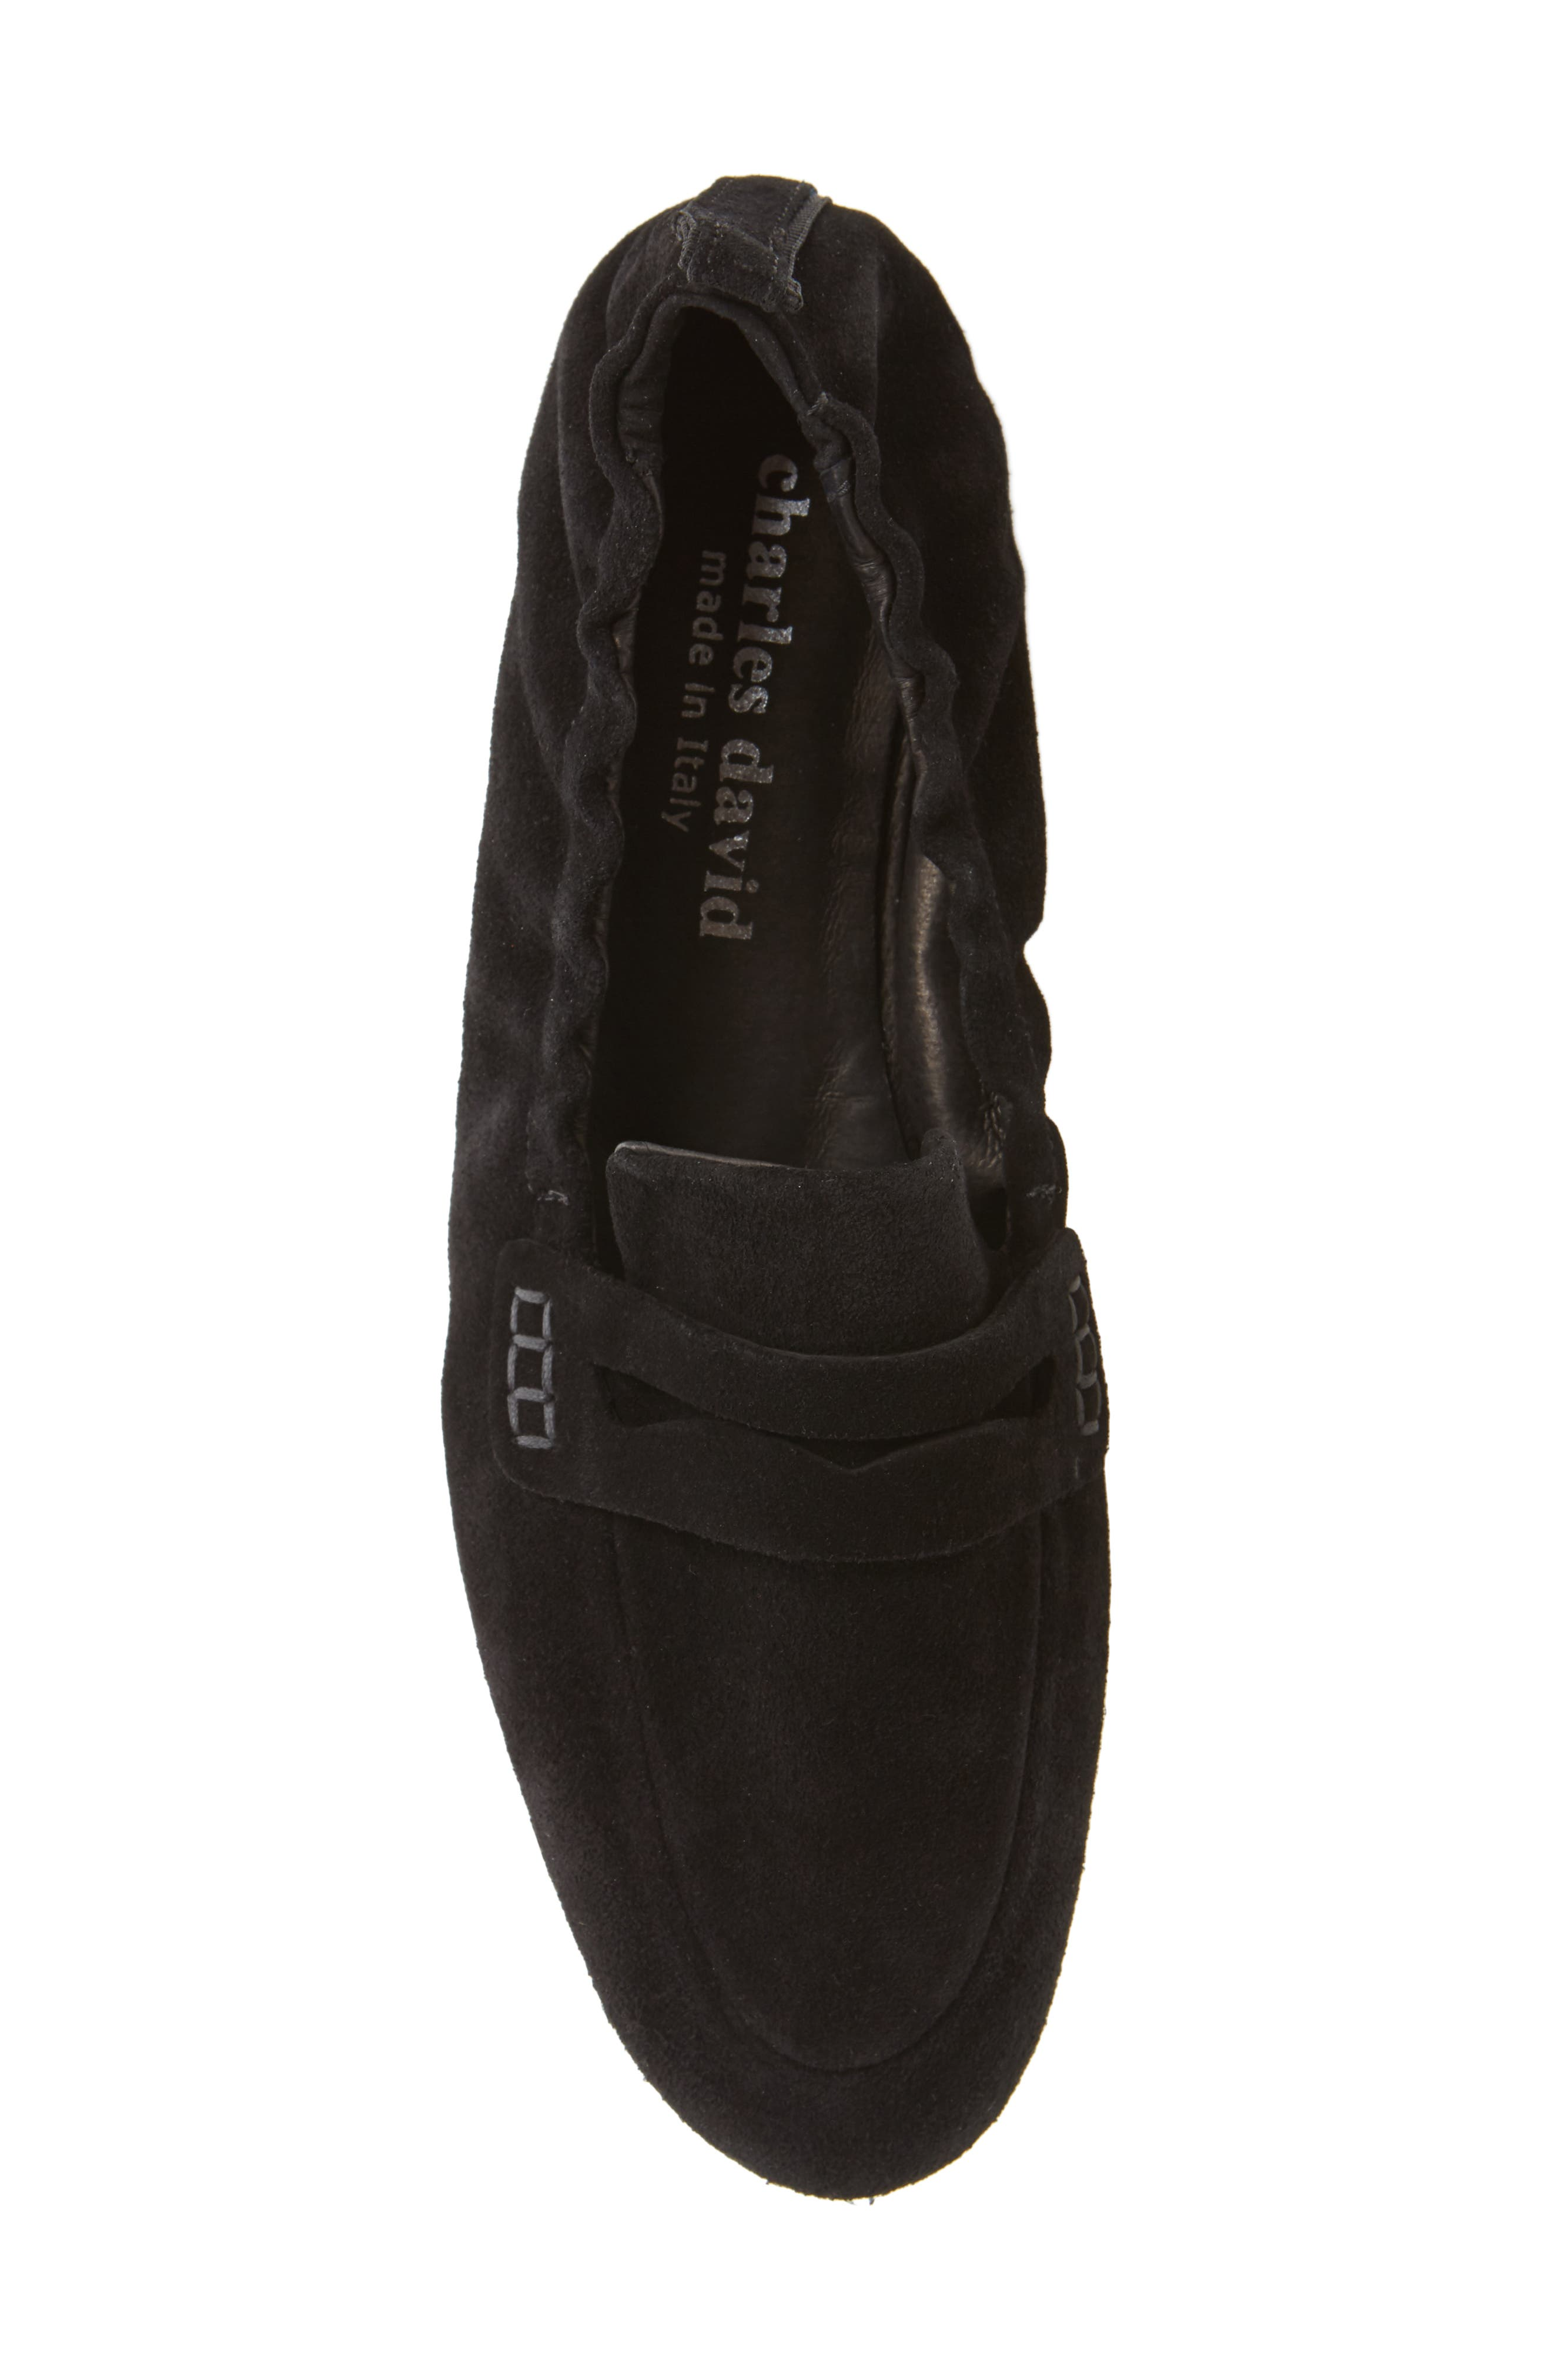 Milly Elastic Loafer Flat,                             Alternate thumbnail 5, color,                             001